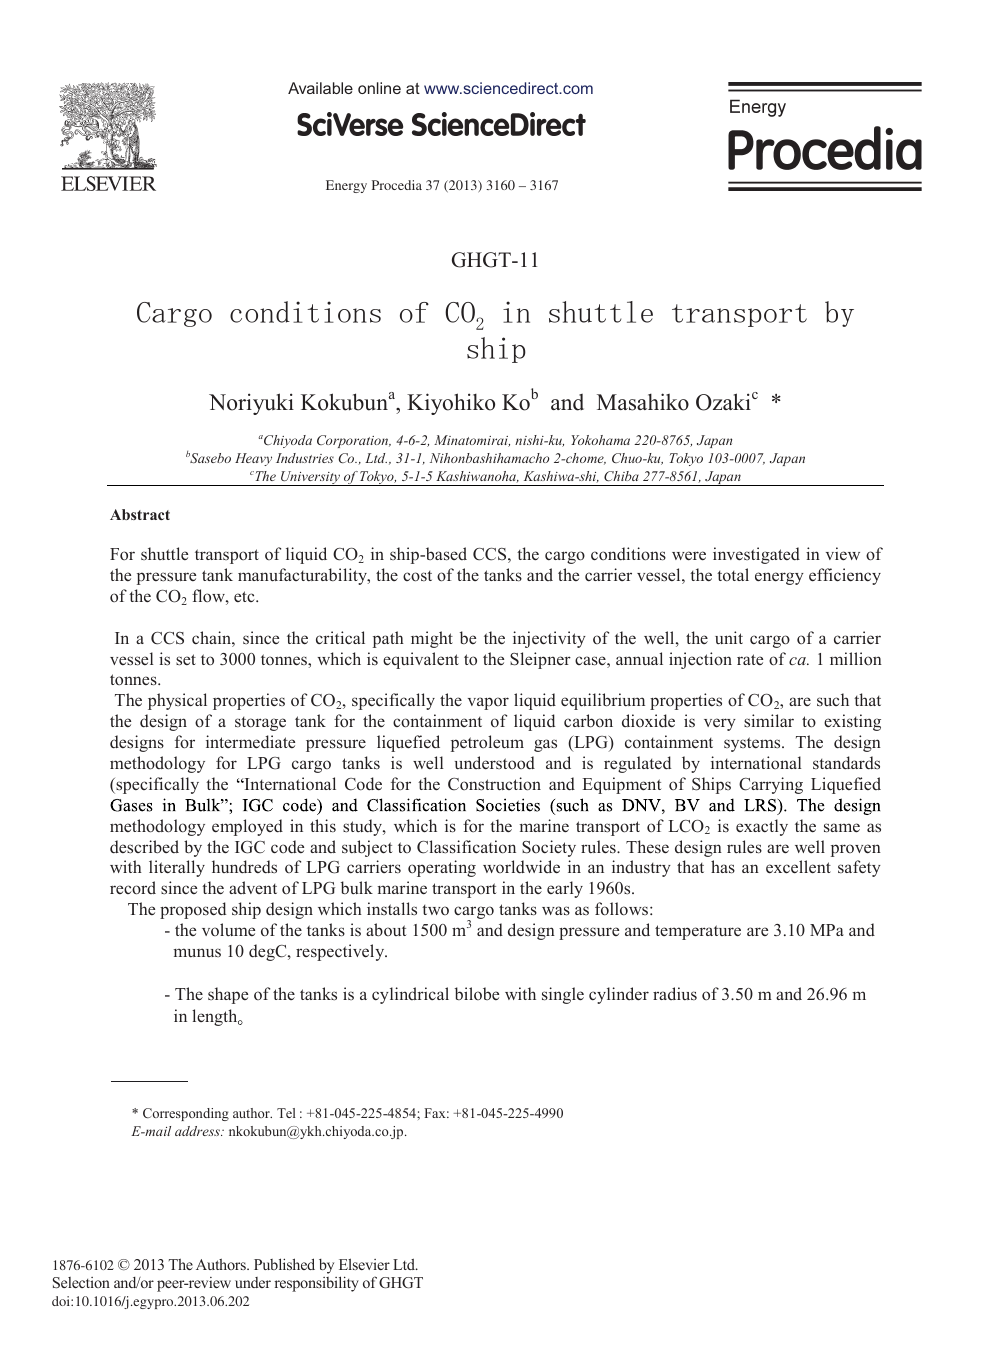 Cargo Conditions of CO2 in Shuttle Transport by Ship – topic